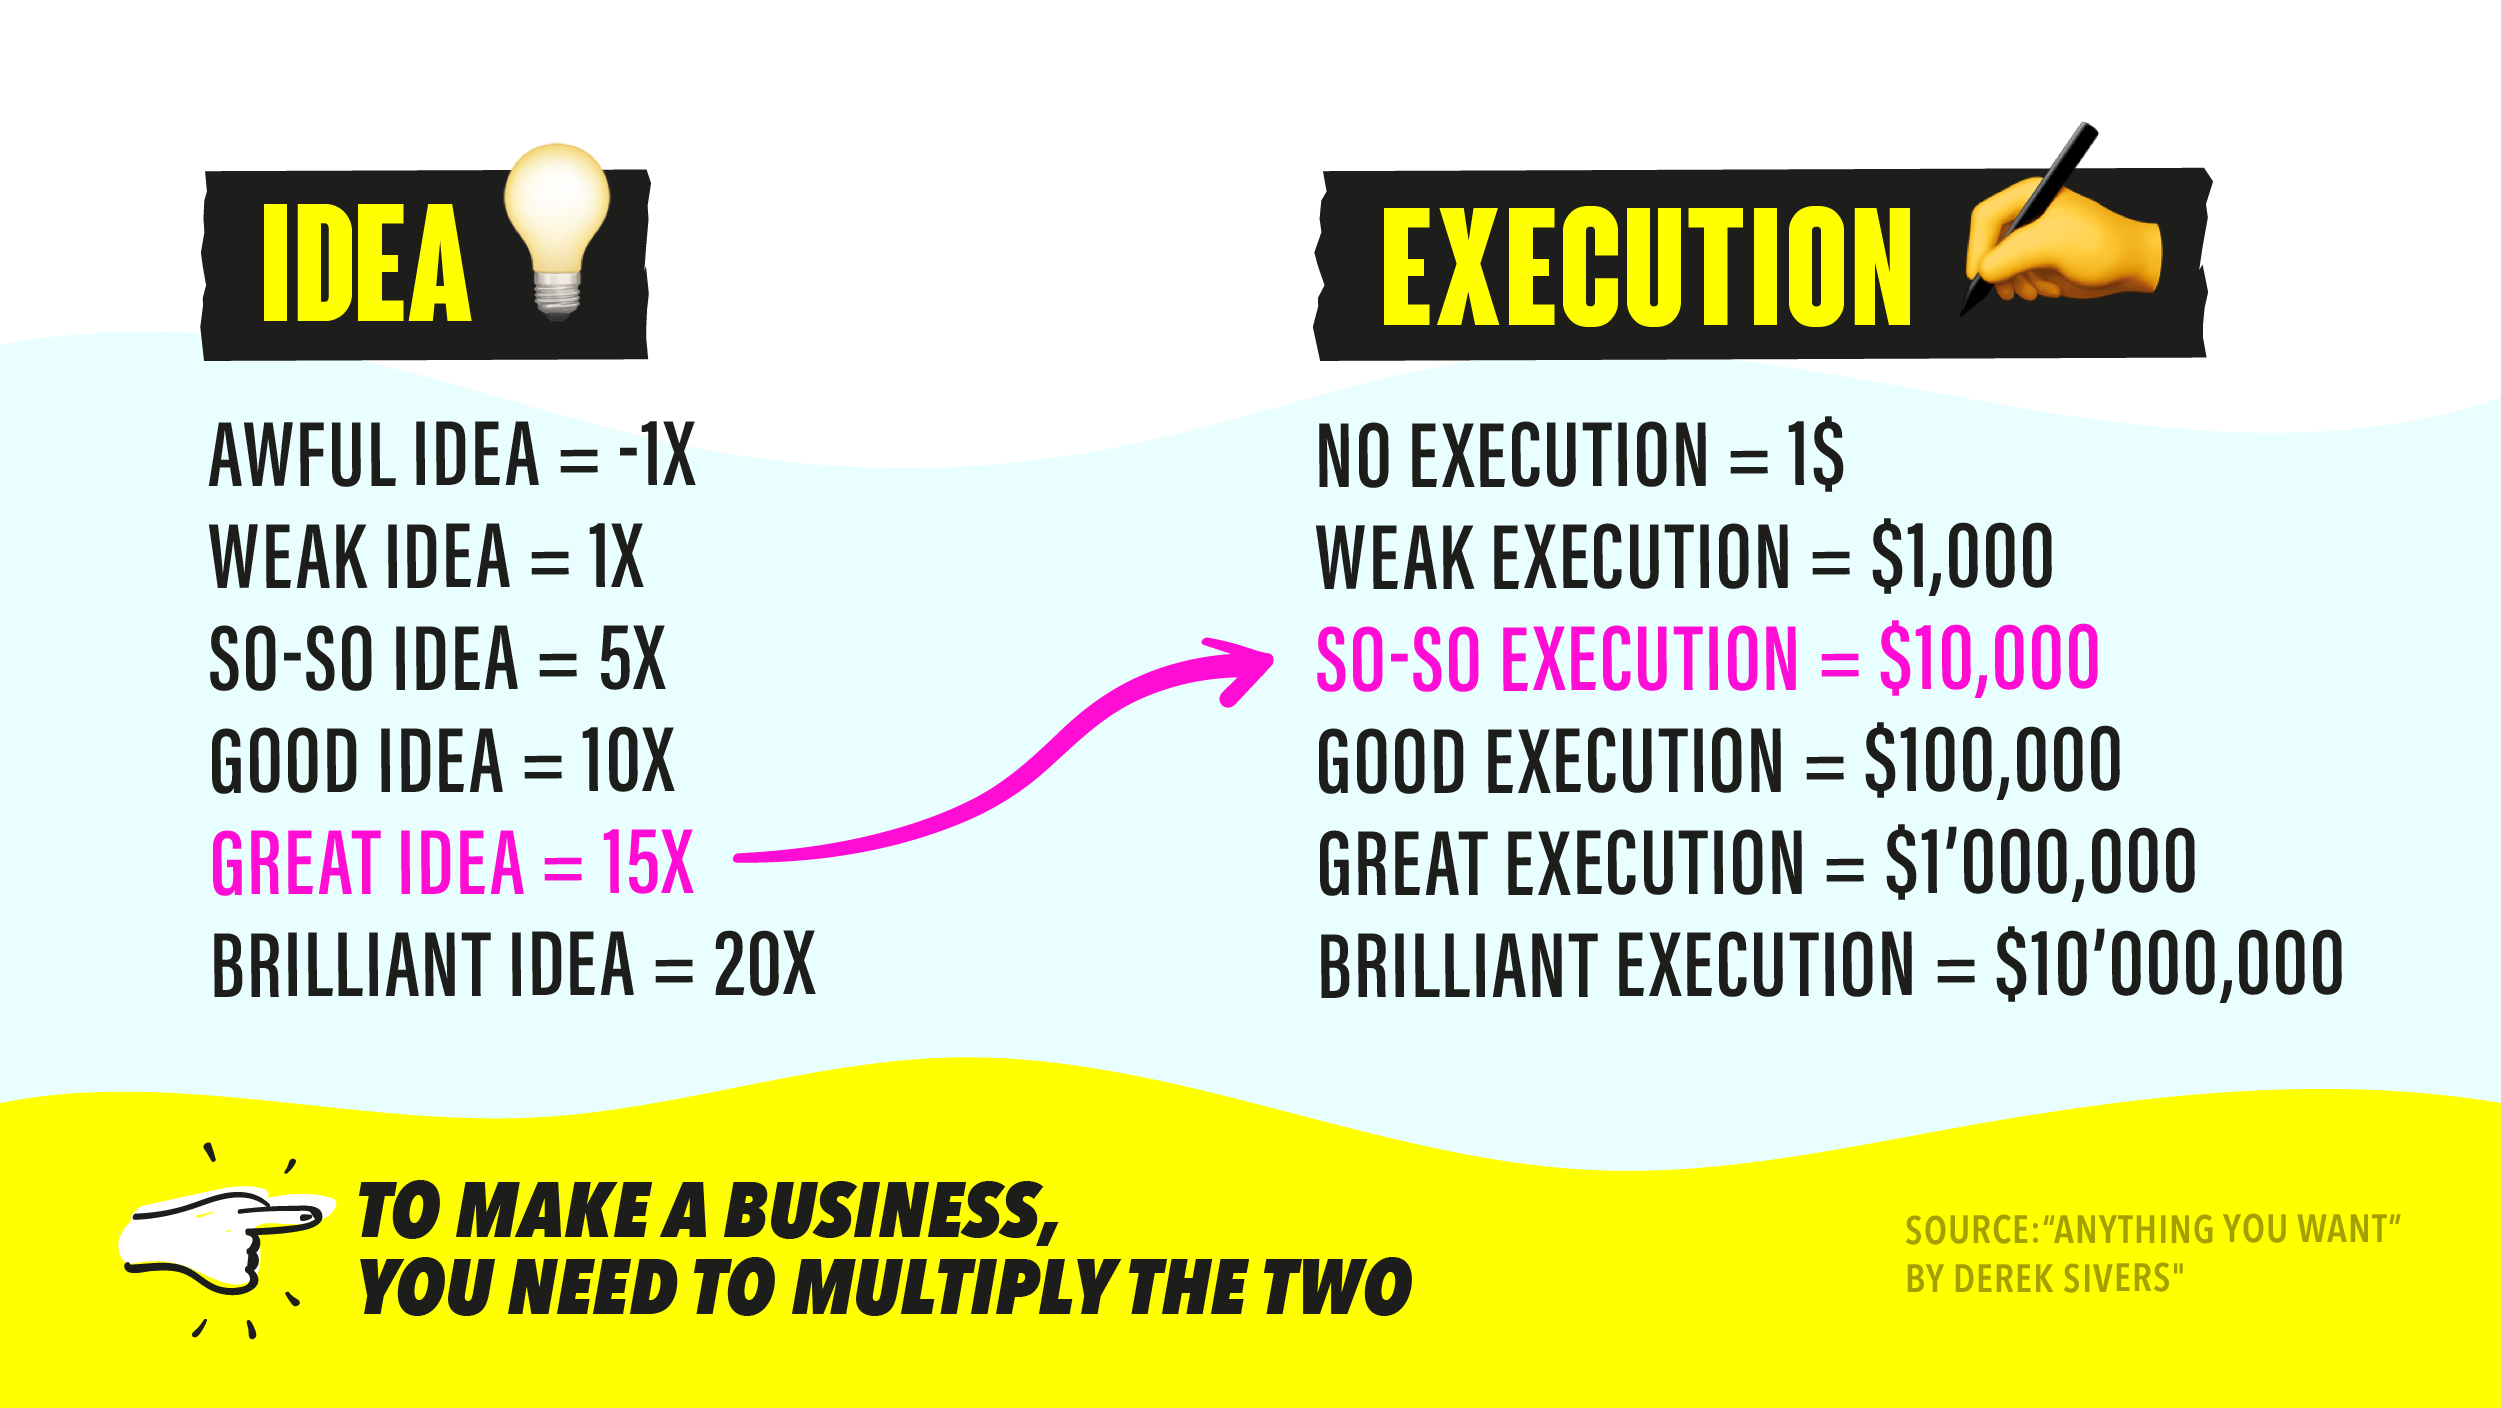 Excellent execution is more important than a good idea.